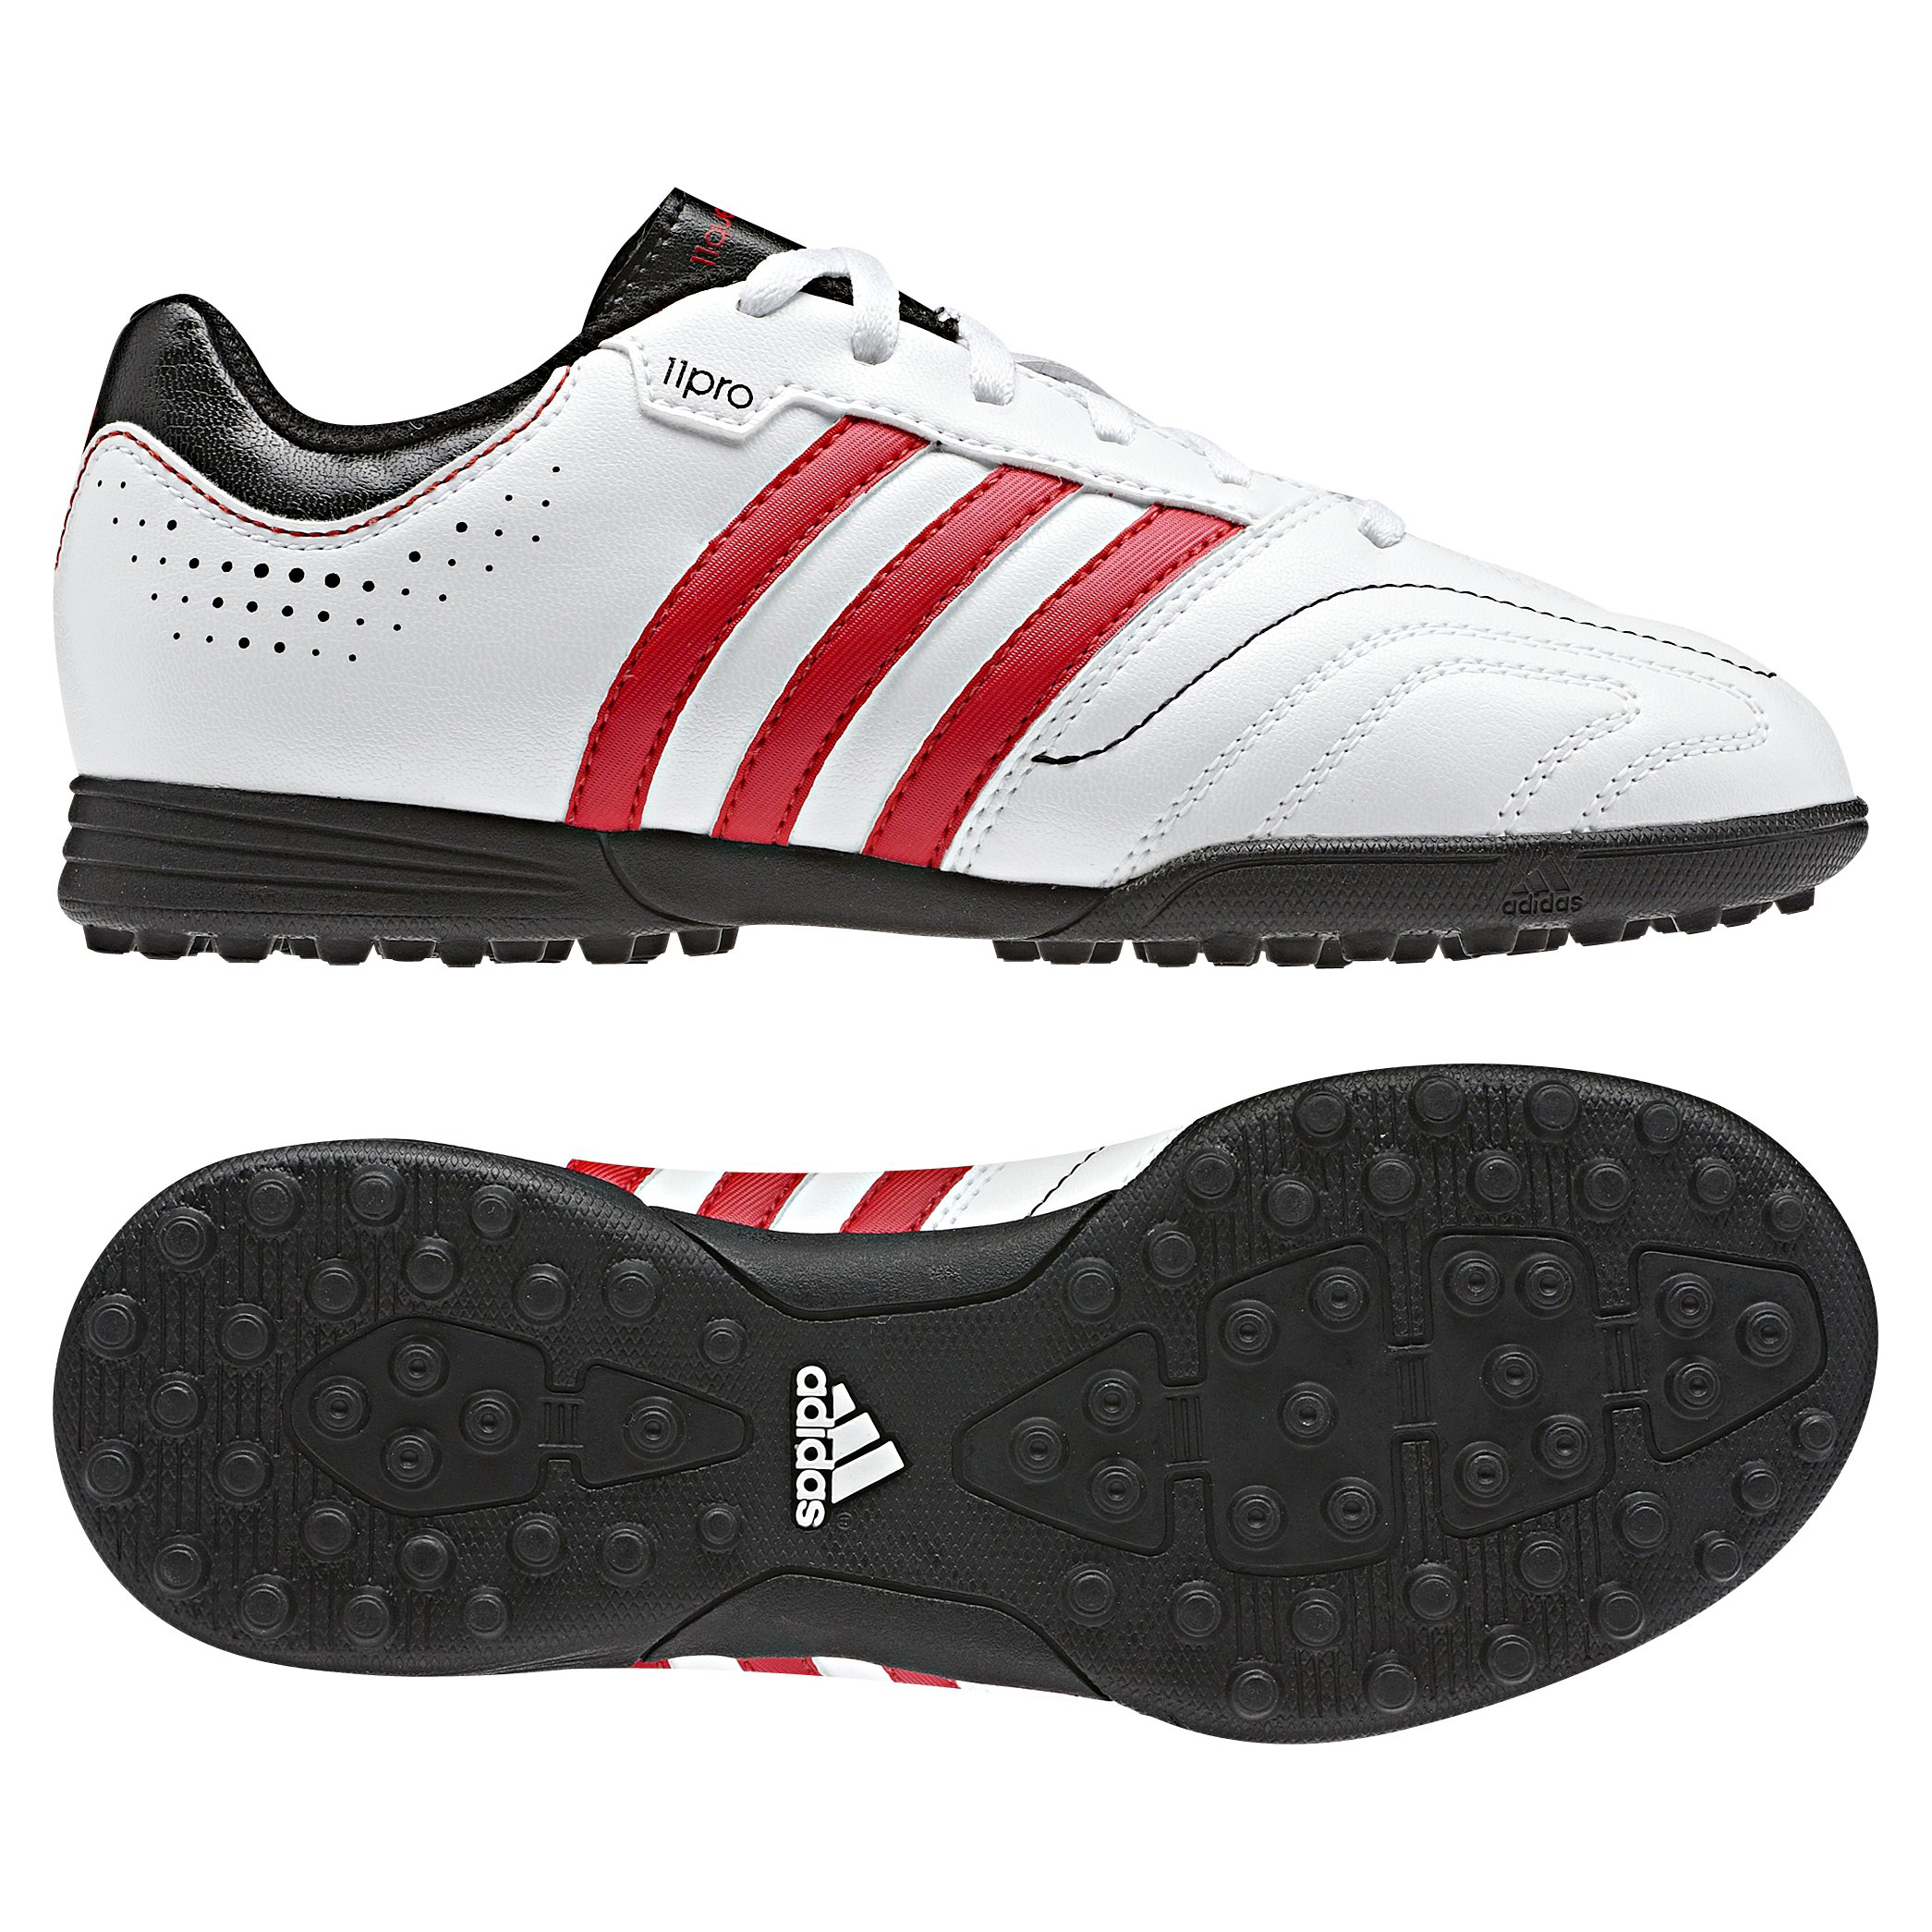 Adidas 11Questra TRX Astroturf Trainers - Kids - White/Vivid Red/Black